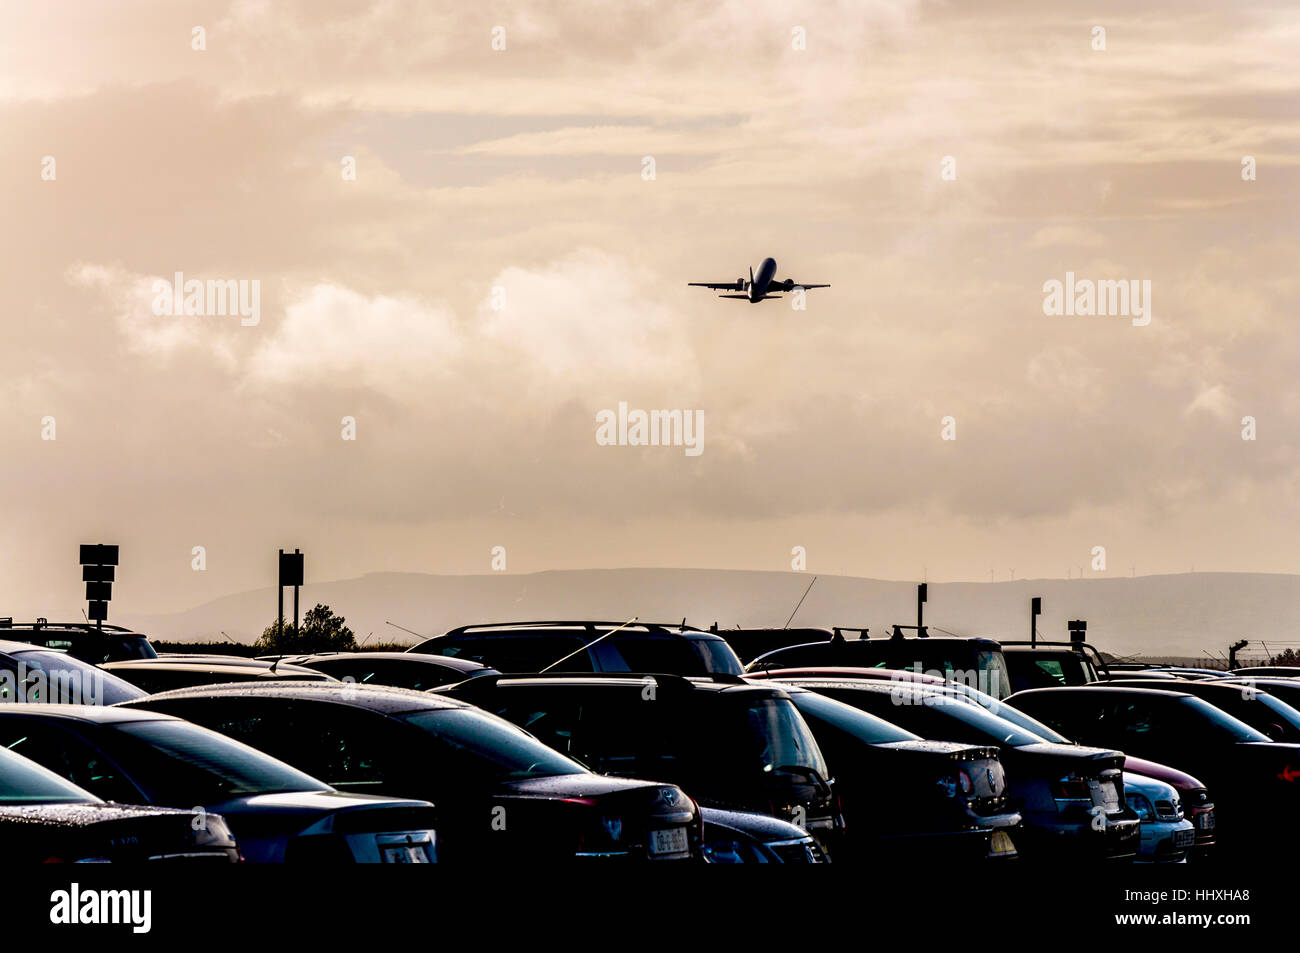 Airport Car Parking Stock Photos Airport Car Parking Stock Images